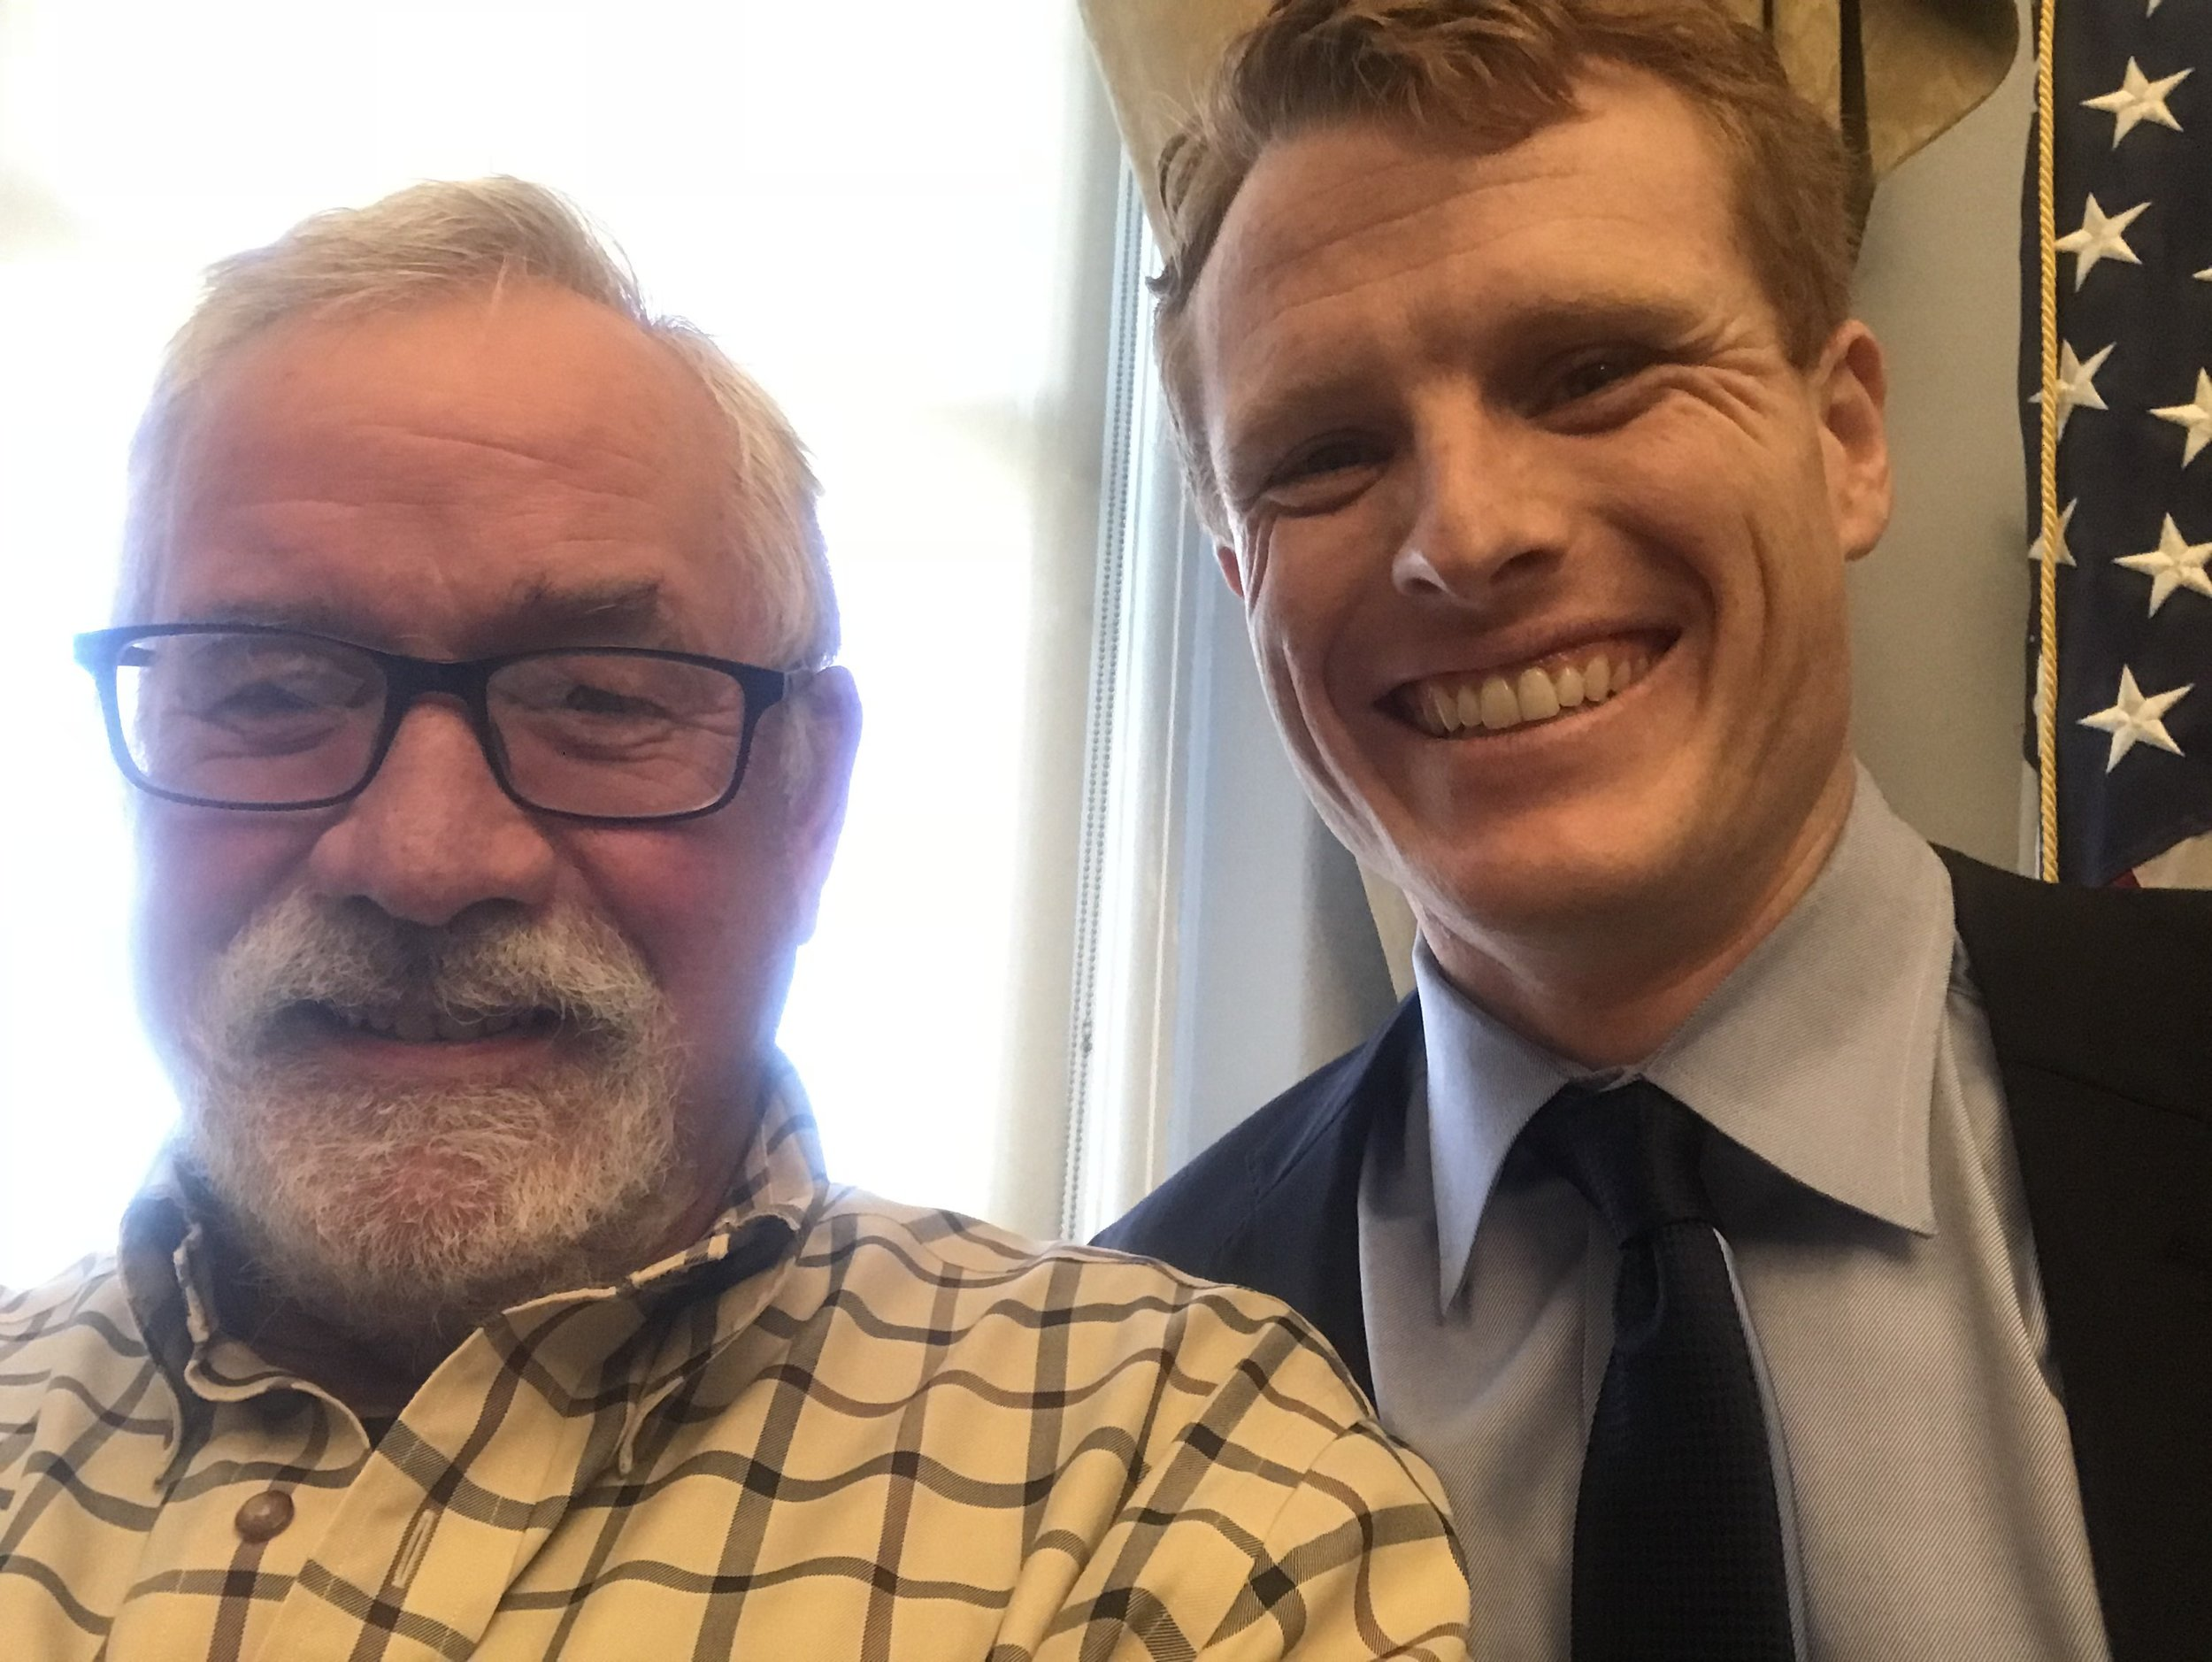 I've never cared to collect pictures of myself with politicians, but it's gotten so that politicians expect everyone to want a selfie, so I took one with Rep. Joe Kennedy III, D-Mass.